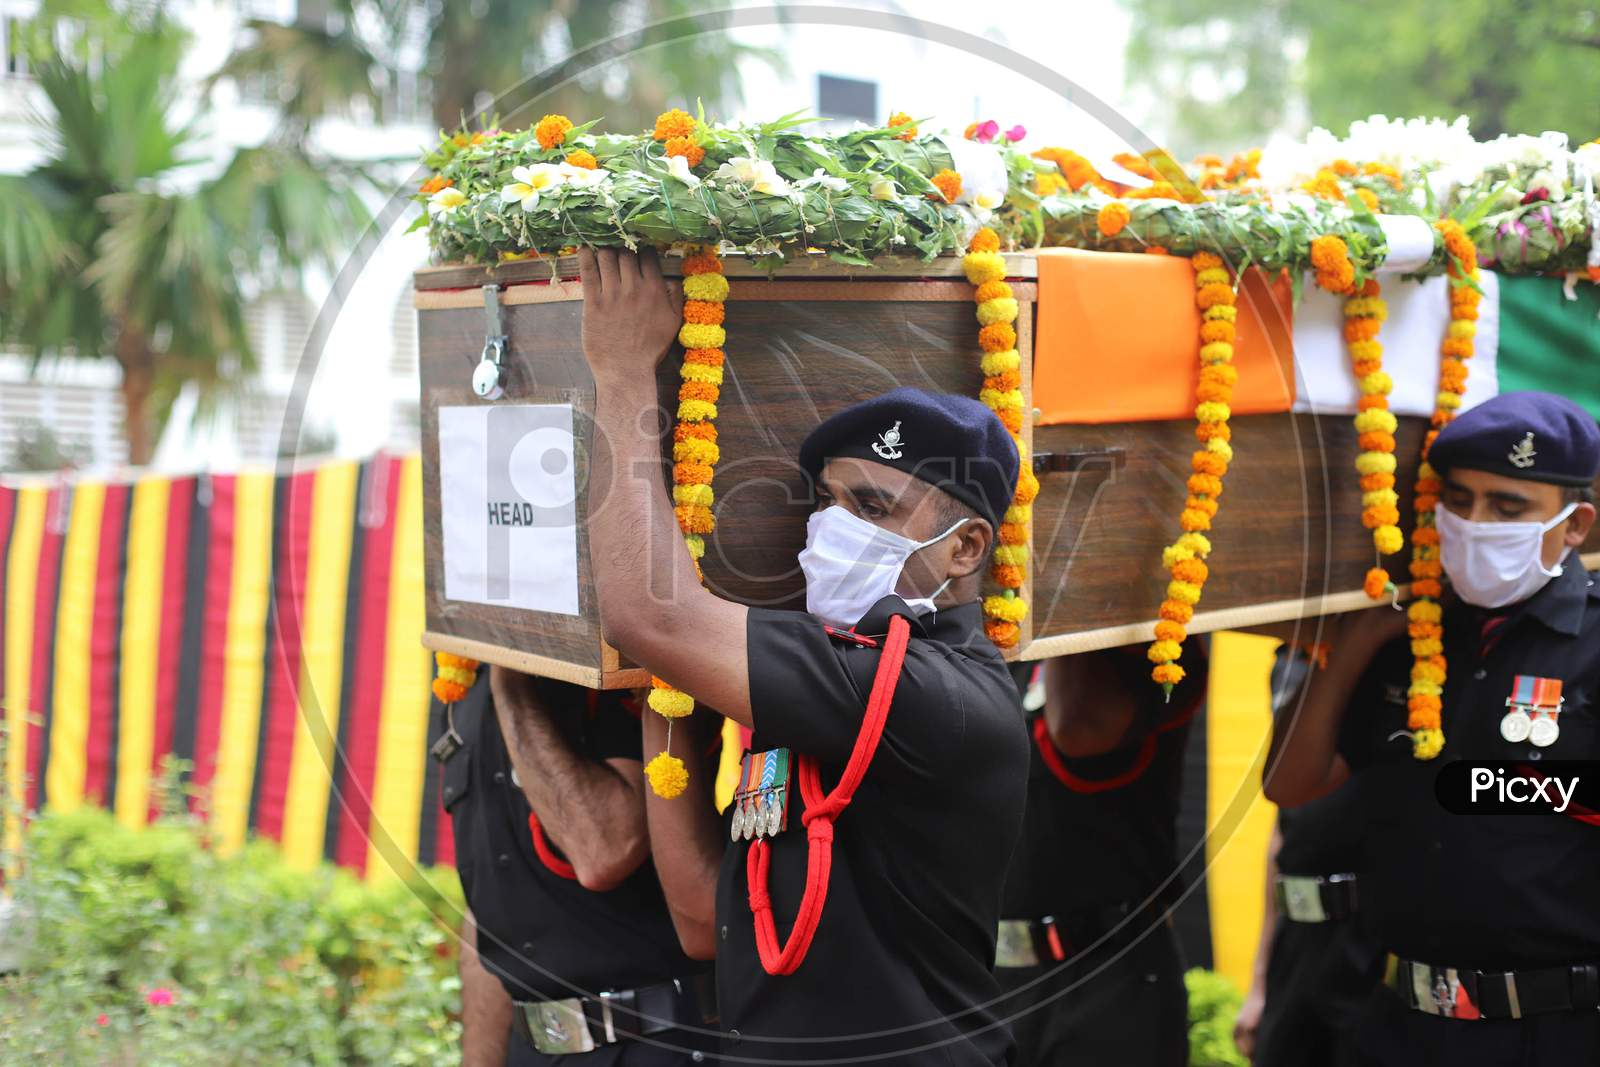 Indian Army Jawans carry the Mortal Remains of N K Deepak Singh, An Indian Soldier Who Was Killed In A Border Clash With Chinese Troops In Ladakh Region, during the funeral ceremony at Military Hospital In Prayagraj, June 19,2020.